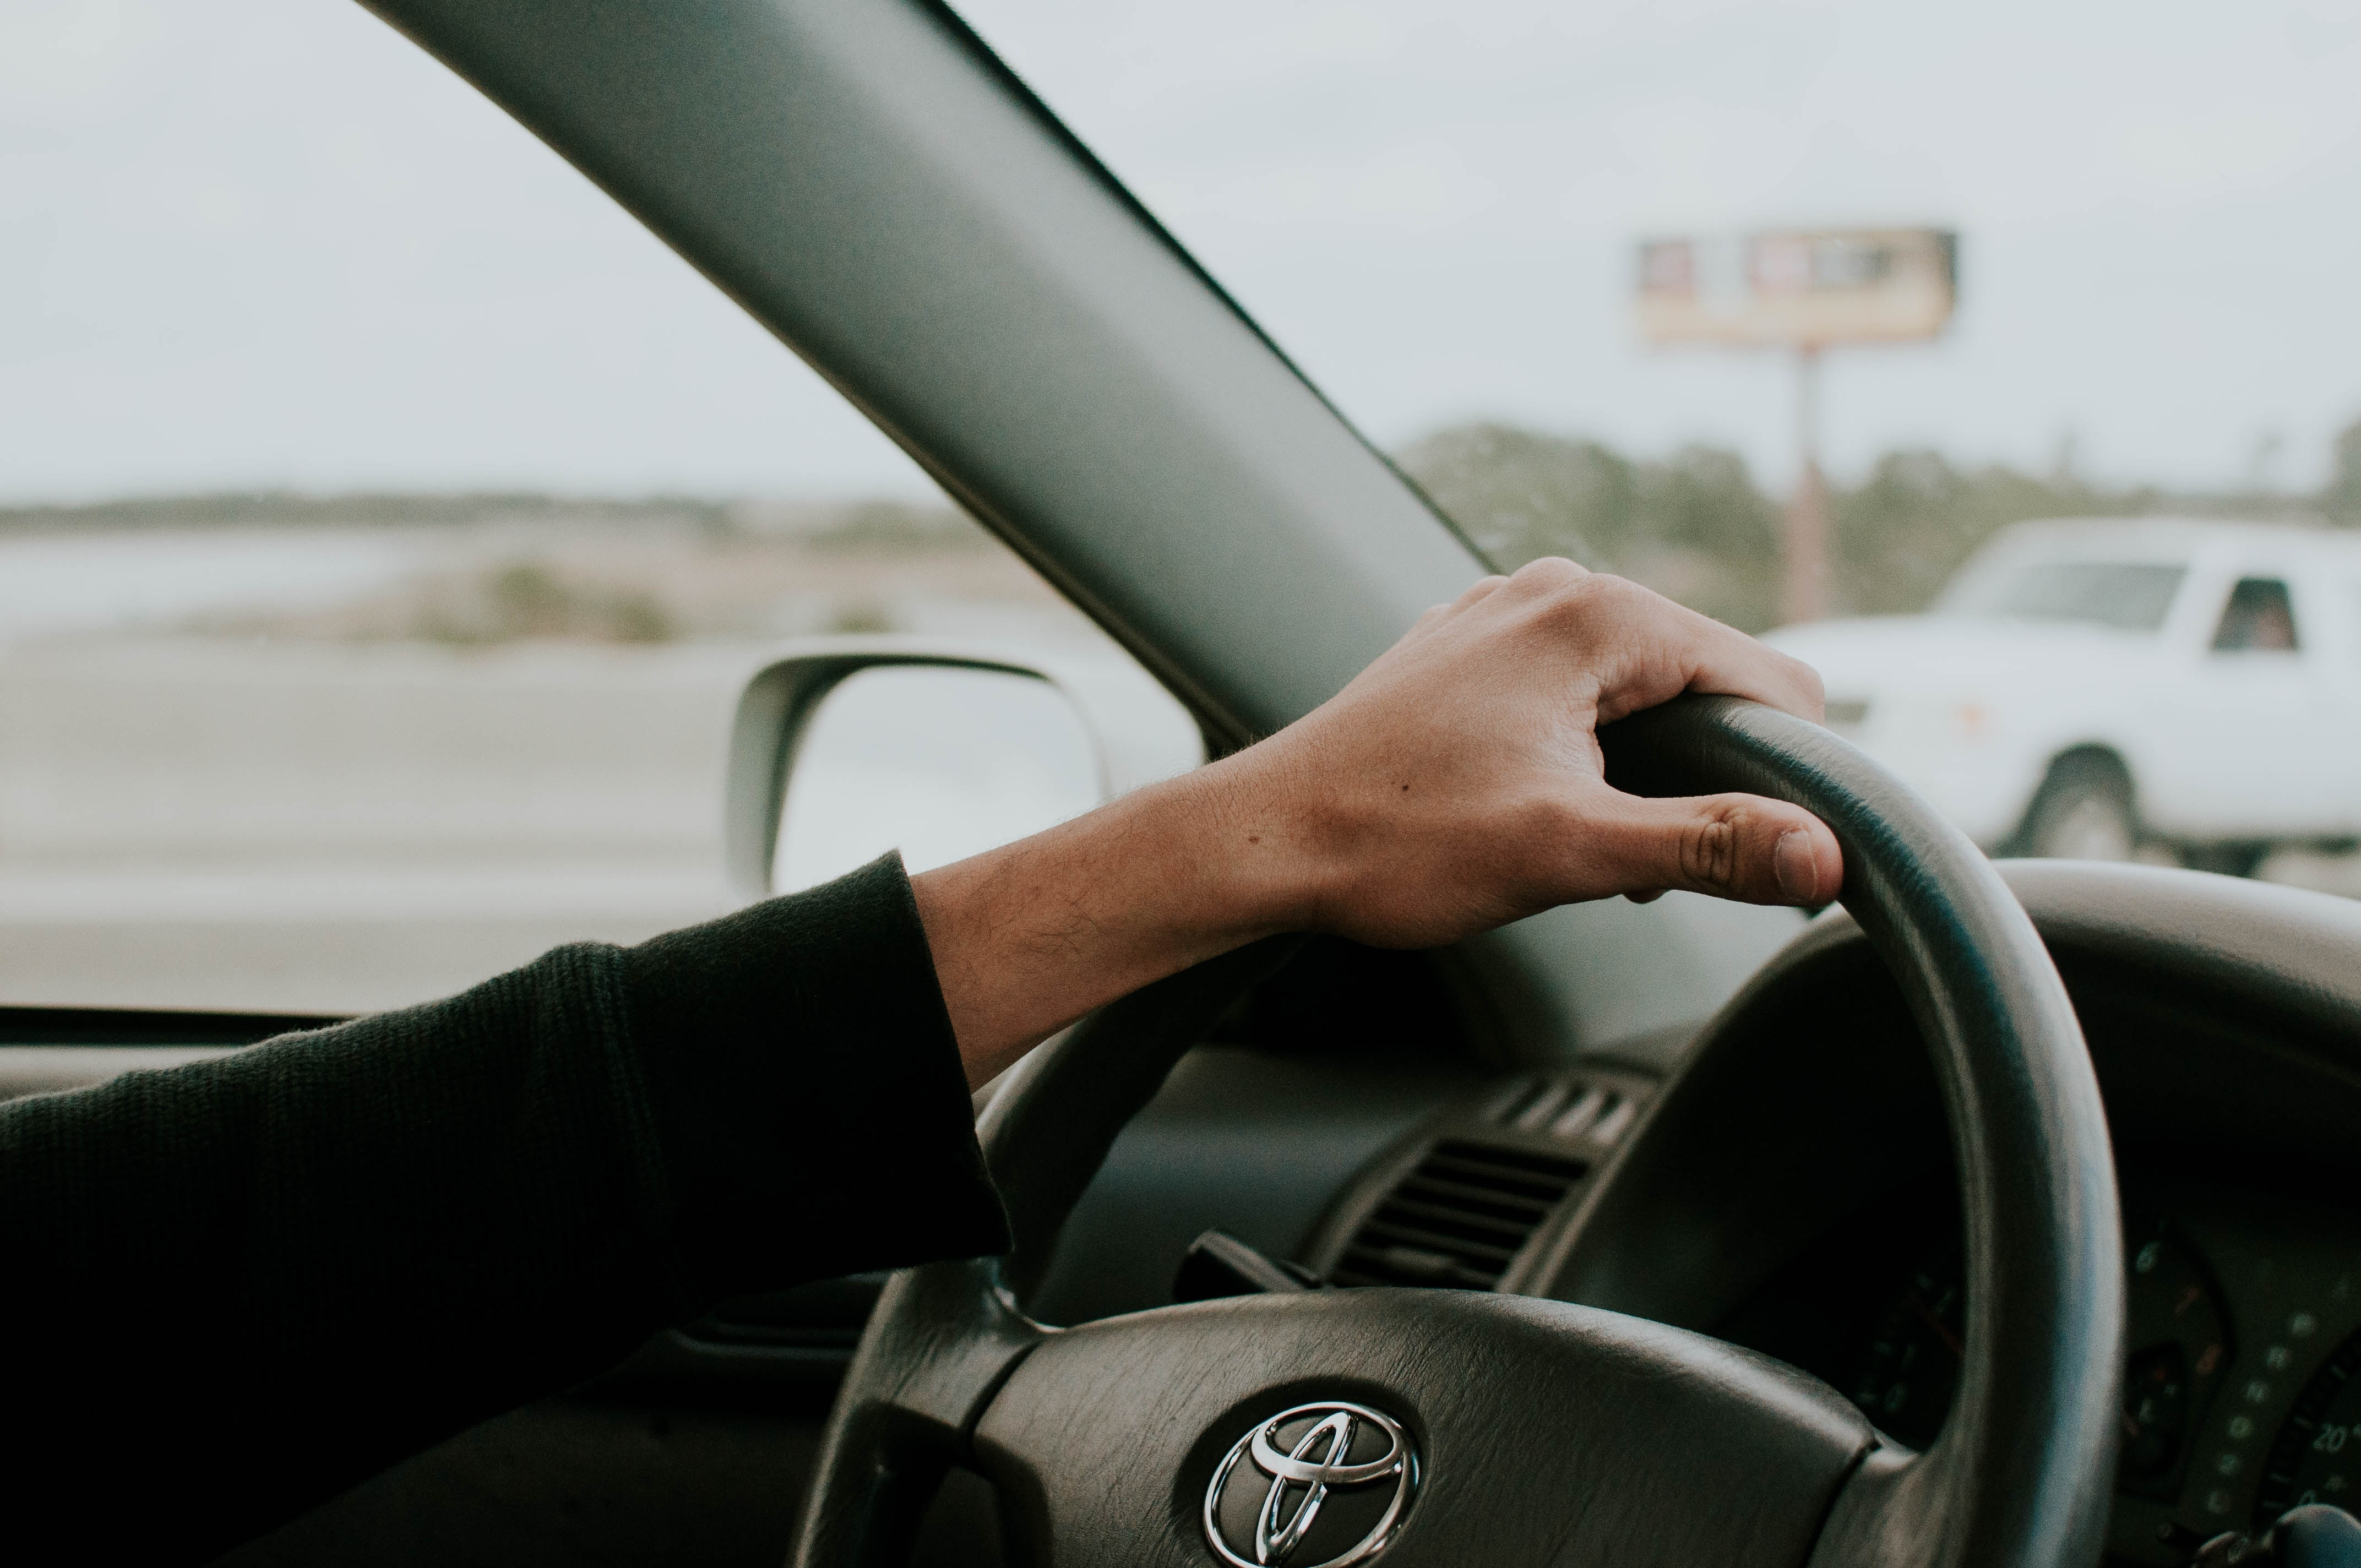 Ontario S 2019 Auto Insurance Reform A Step In The Right Direction